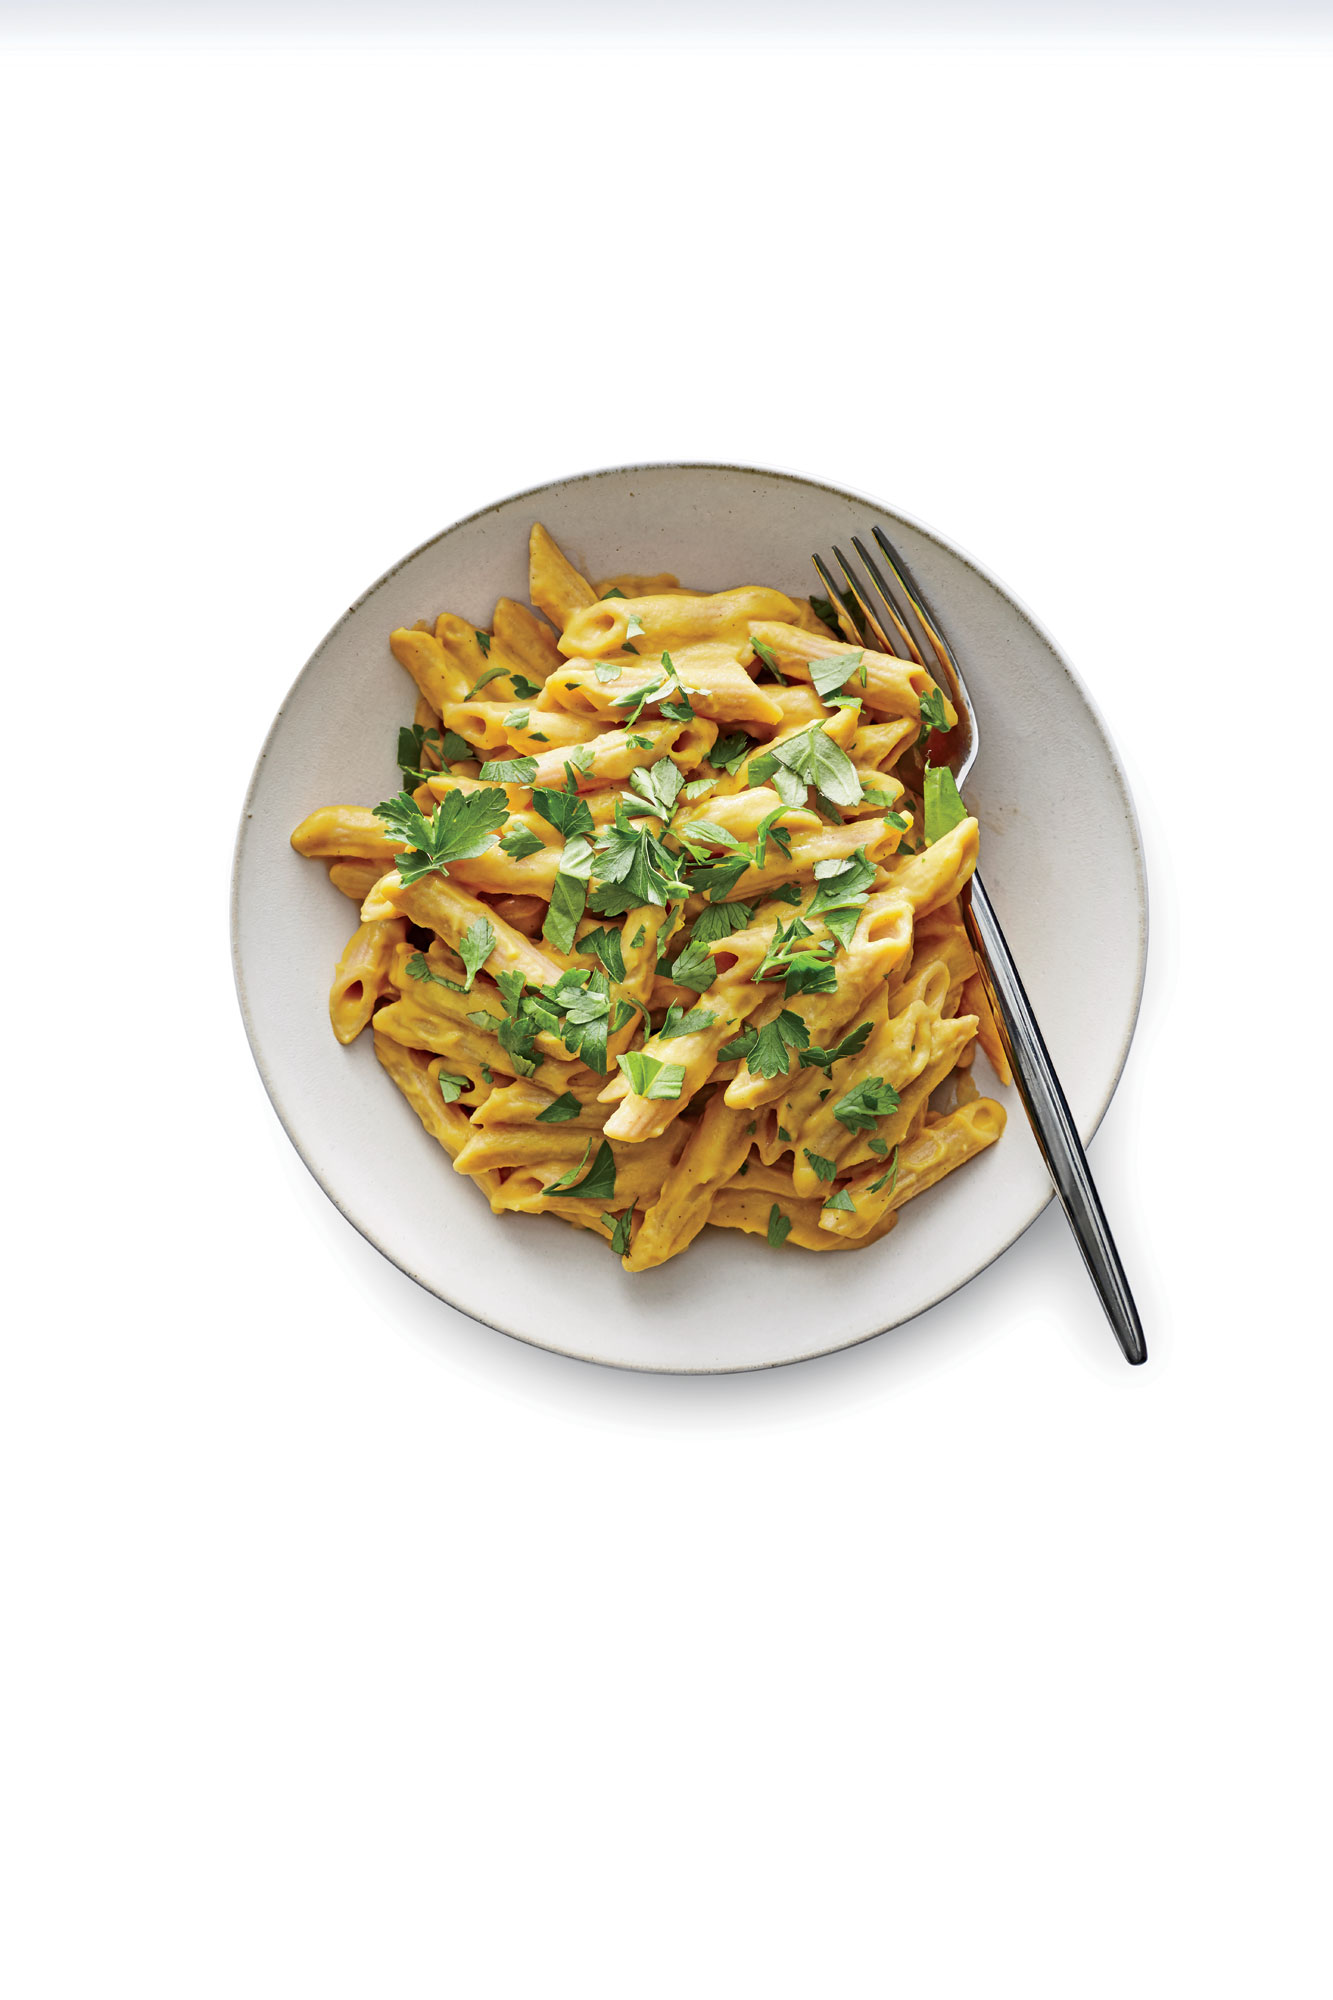 ck-Pasta with Chickpea Sauce